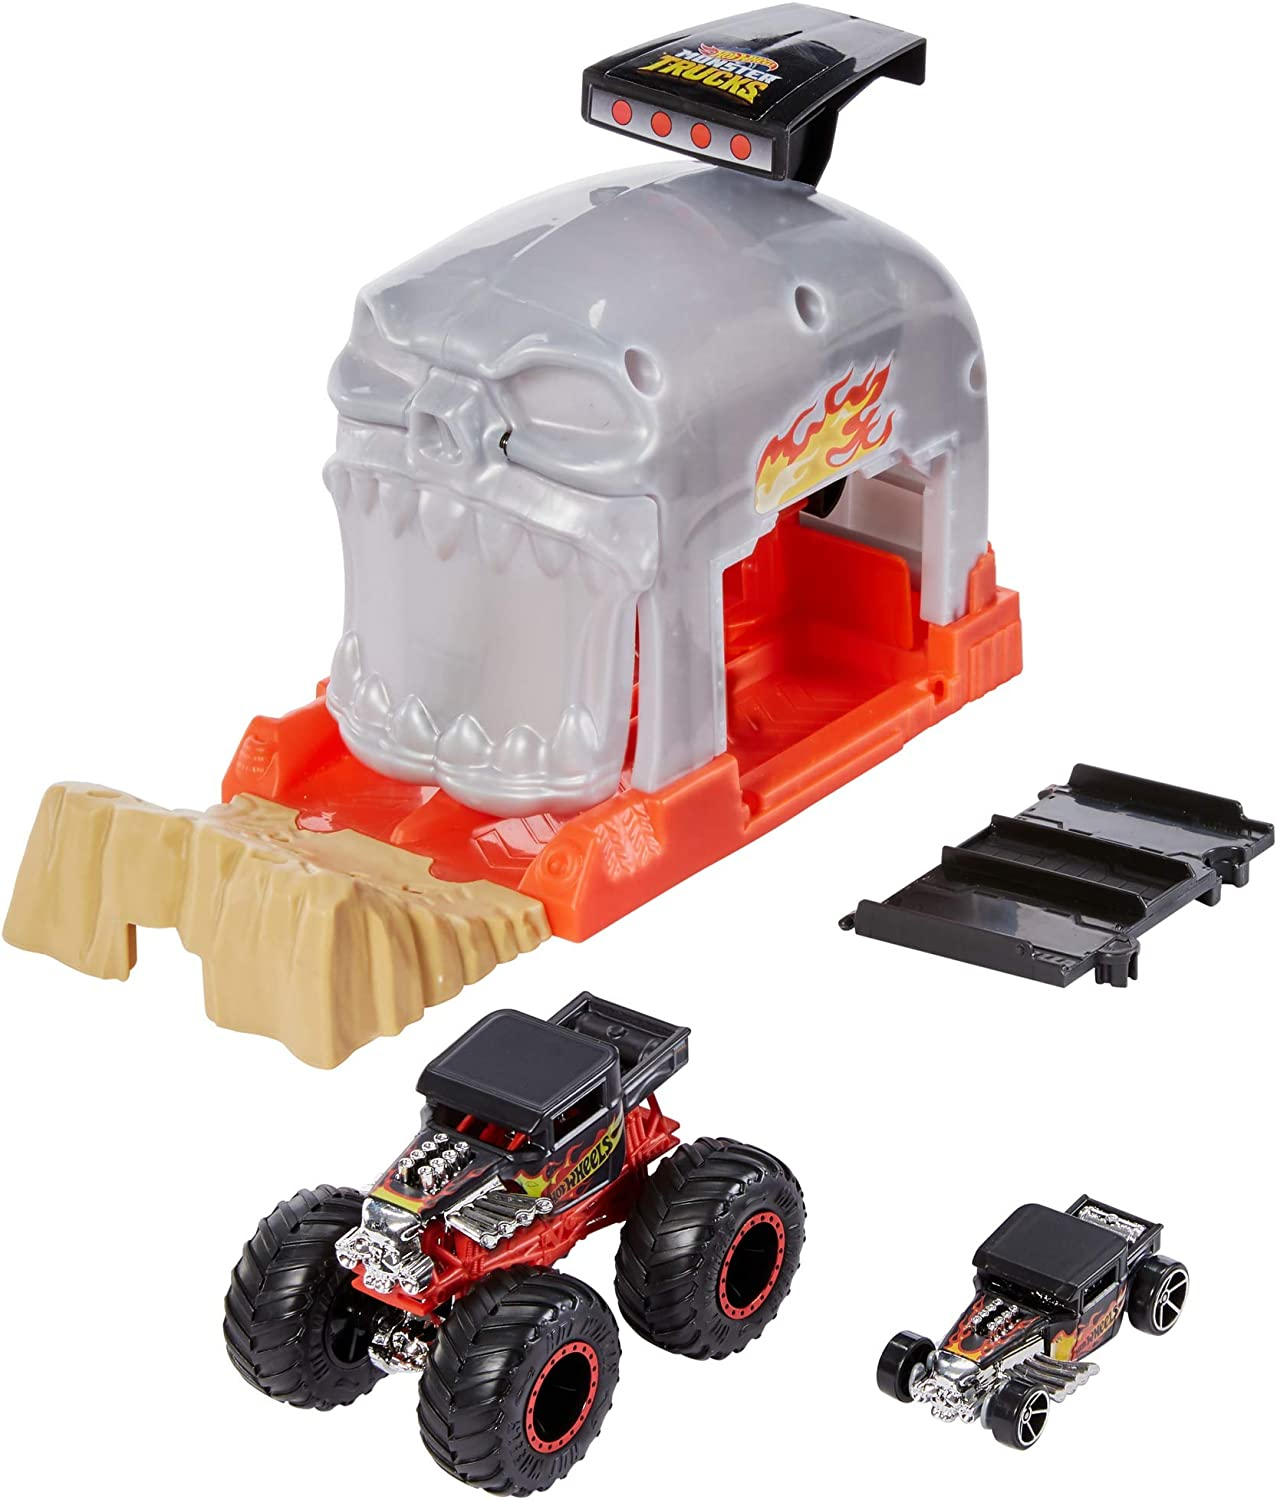 Hot Wheels Monster Truck Pit & Launch Play Sets with a Monster Truck and a 1:64 car, Team Bone Shaker